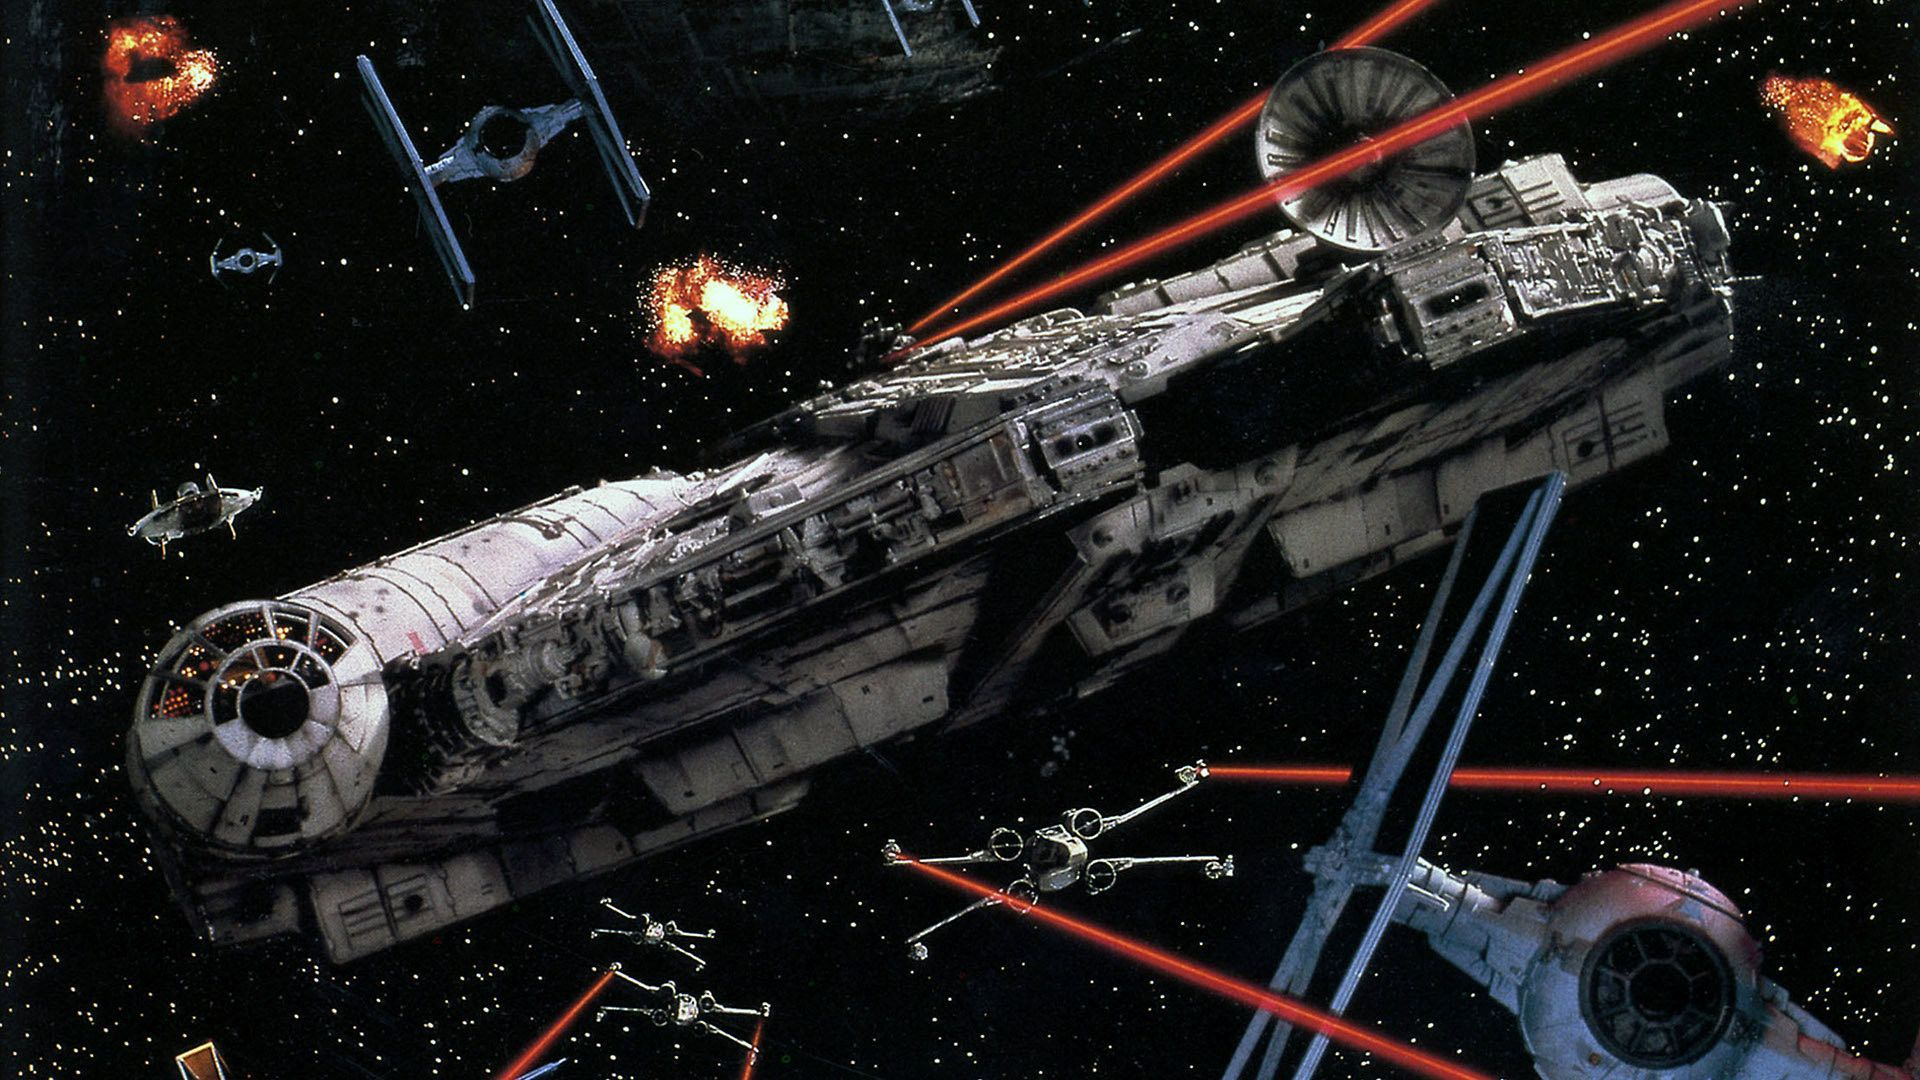 1920x1080 30 Star Wars Episode Vi Return Of The Jedi Hd Wallpapers Backgrounds Wallpaper Abyss Star Wars Wallpaper Star Wars Ships Star Wars Spaceships